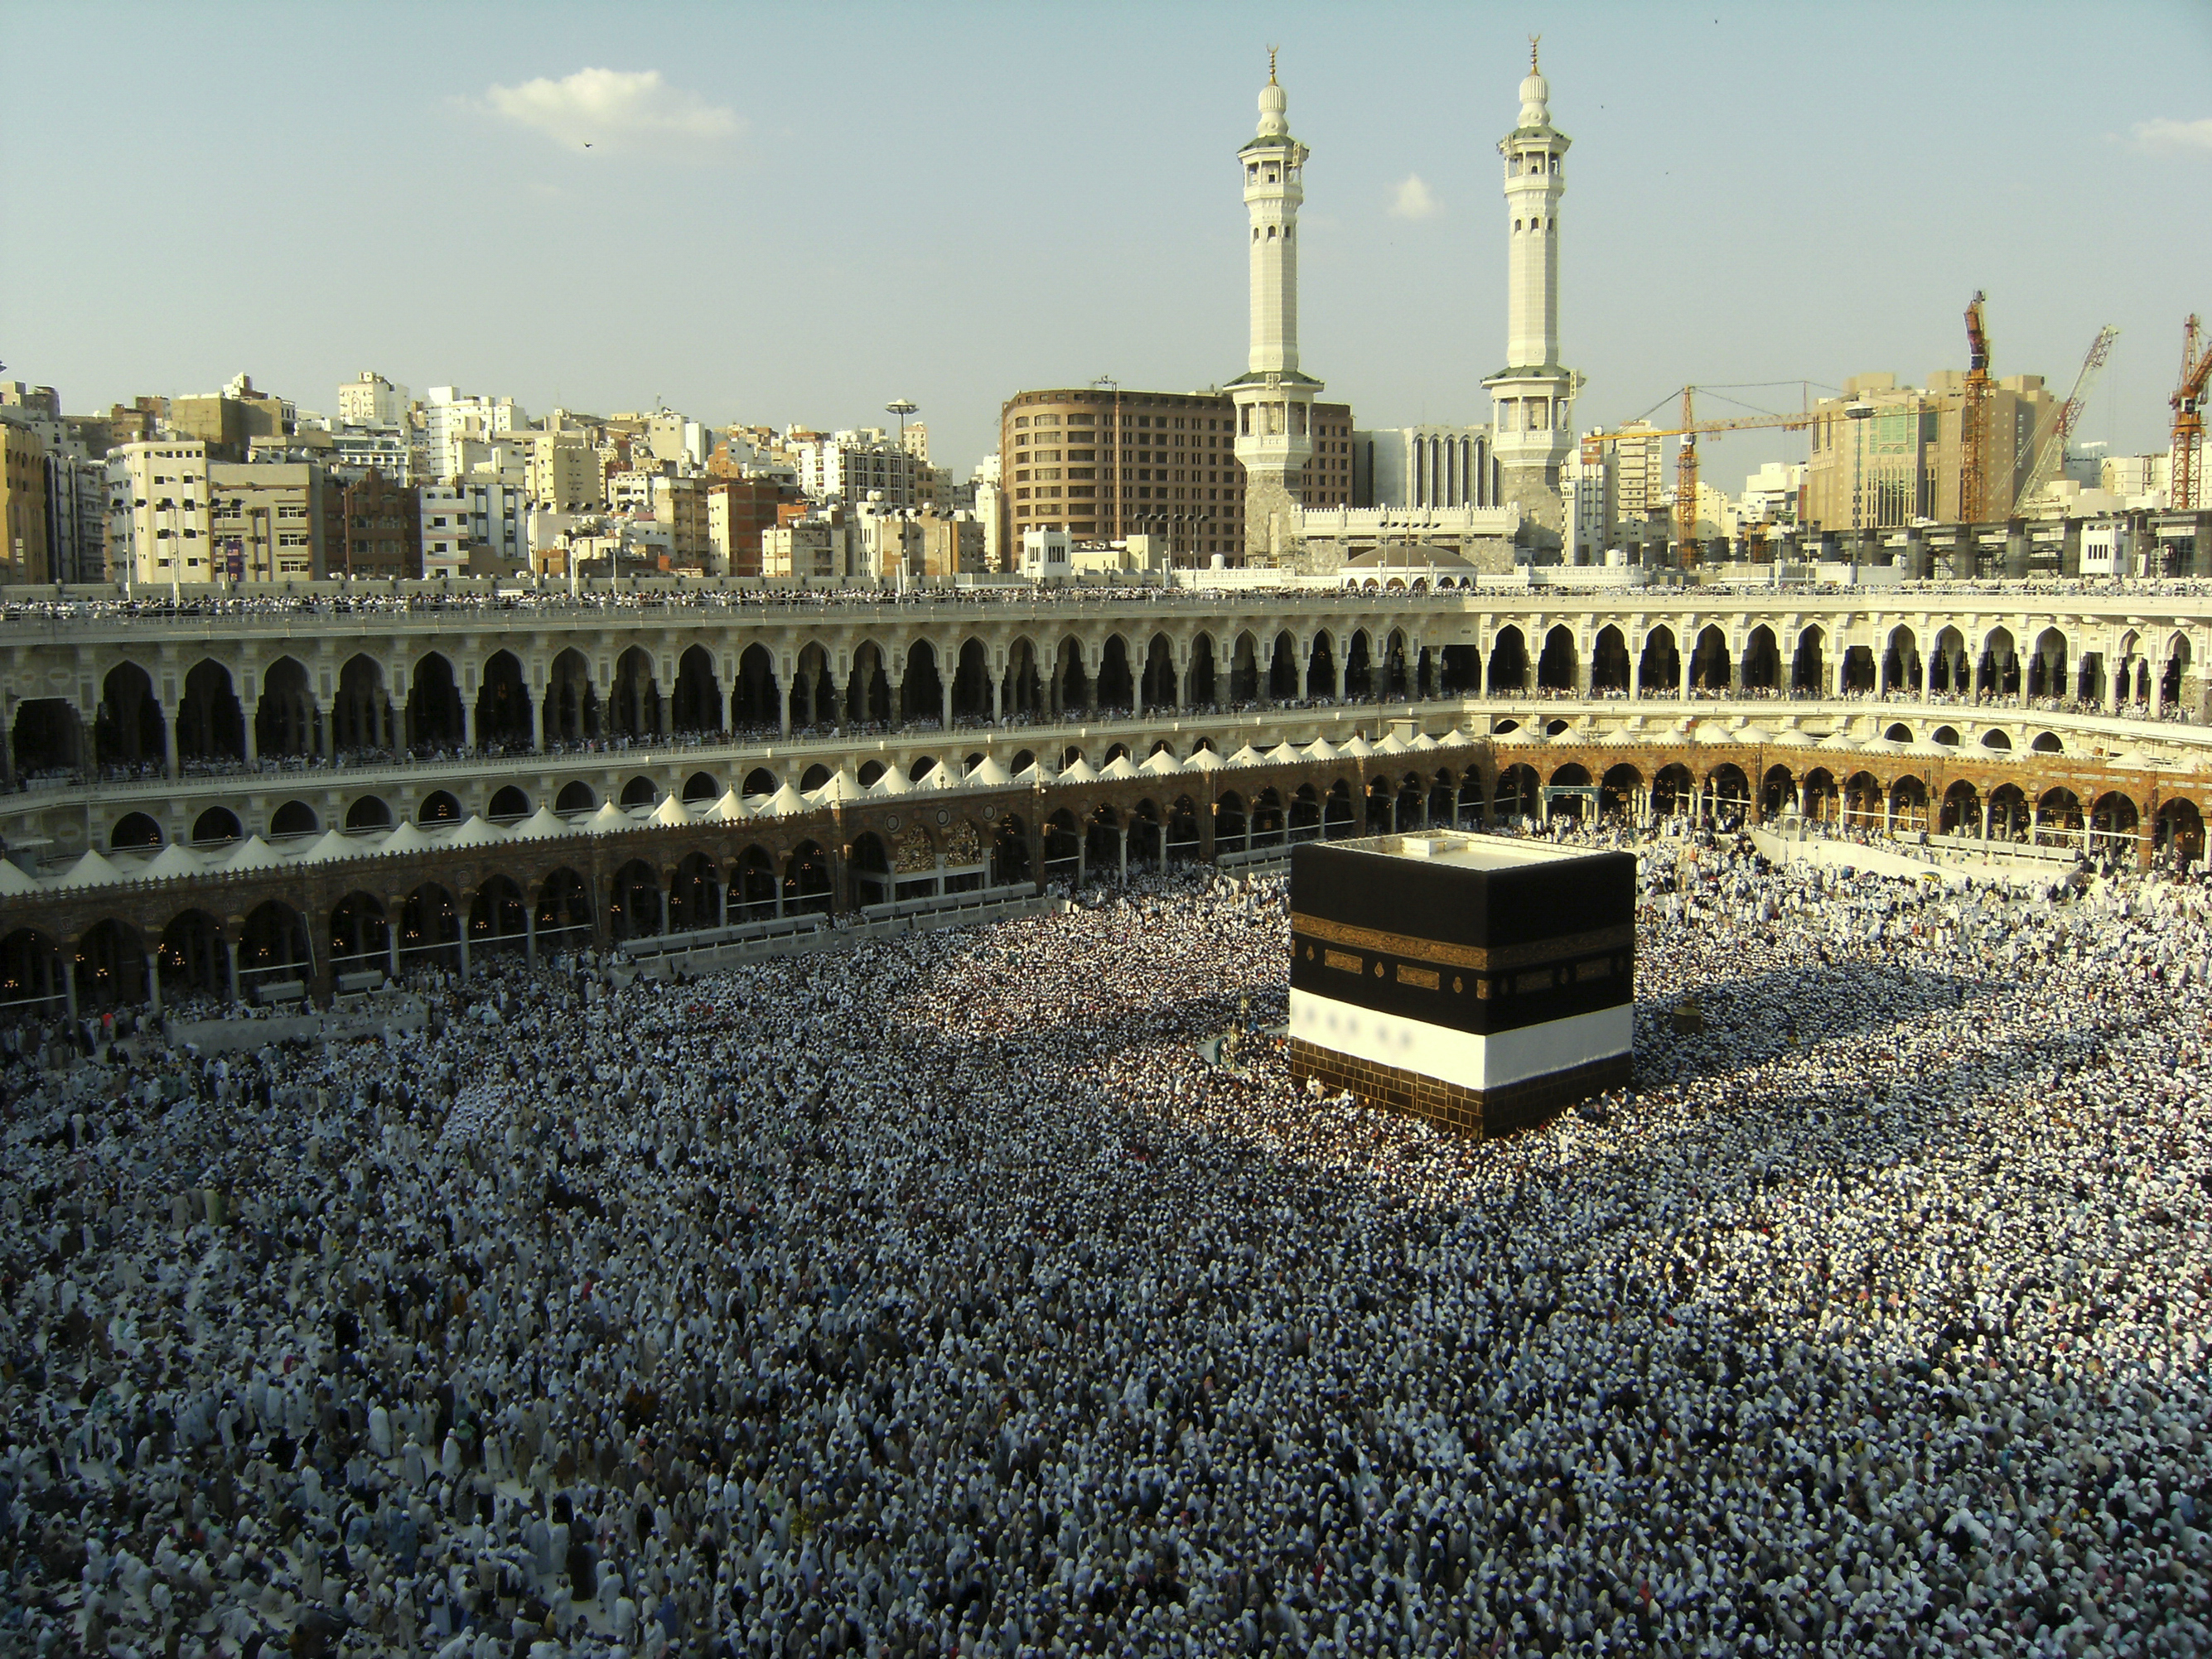 Pilgrims at the Kabbah in Mecca